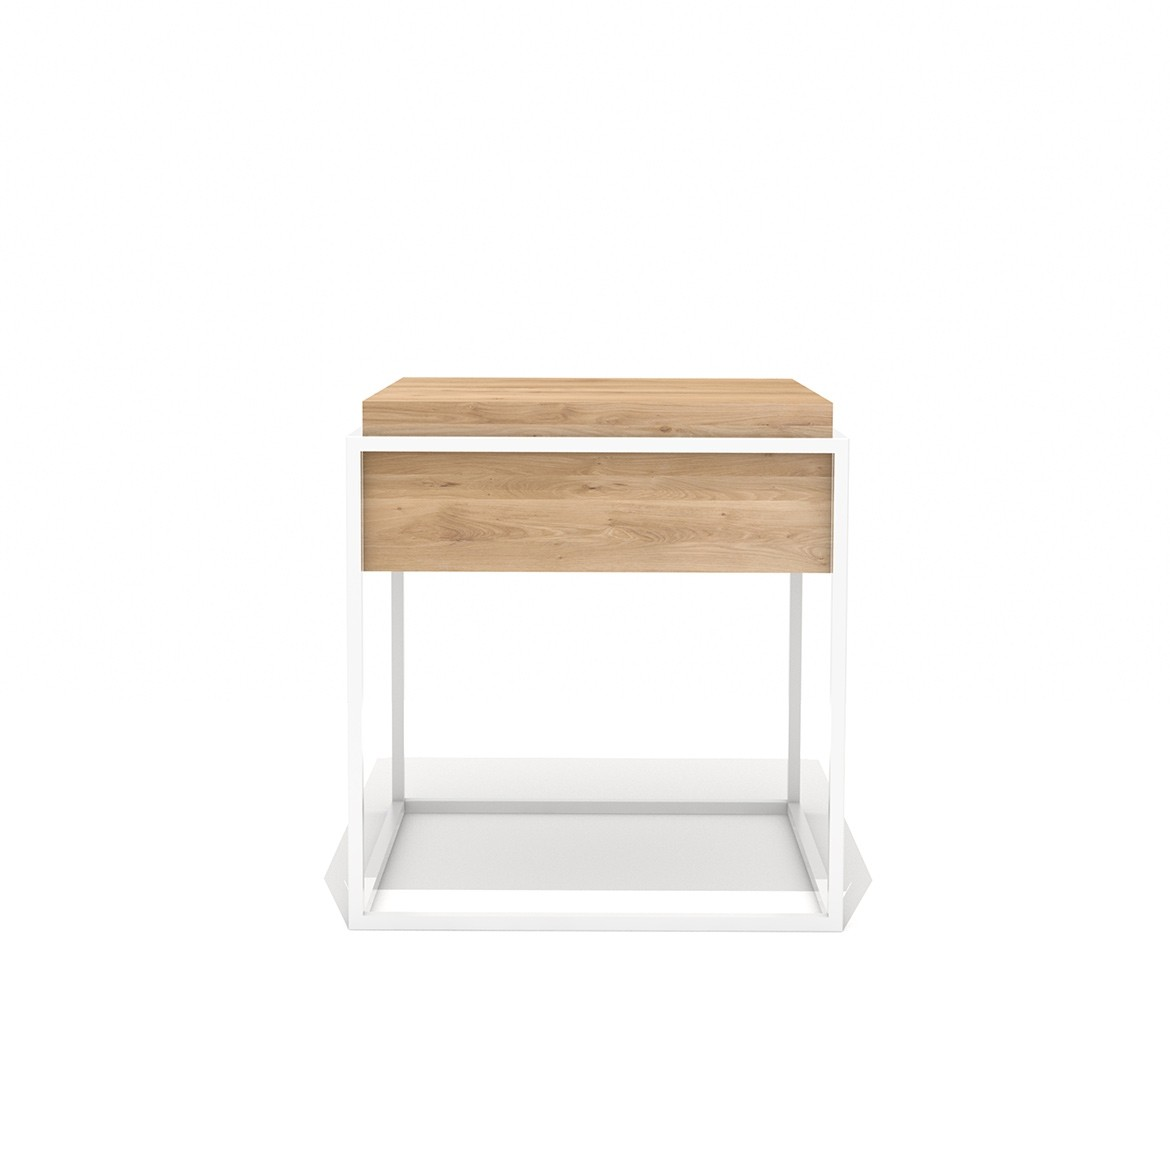 Ethnicraft Monolit Side Tables S